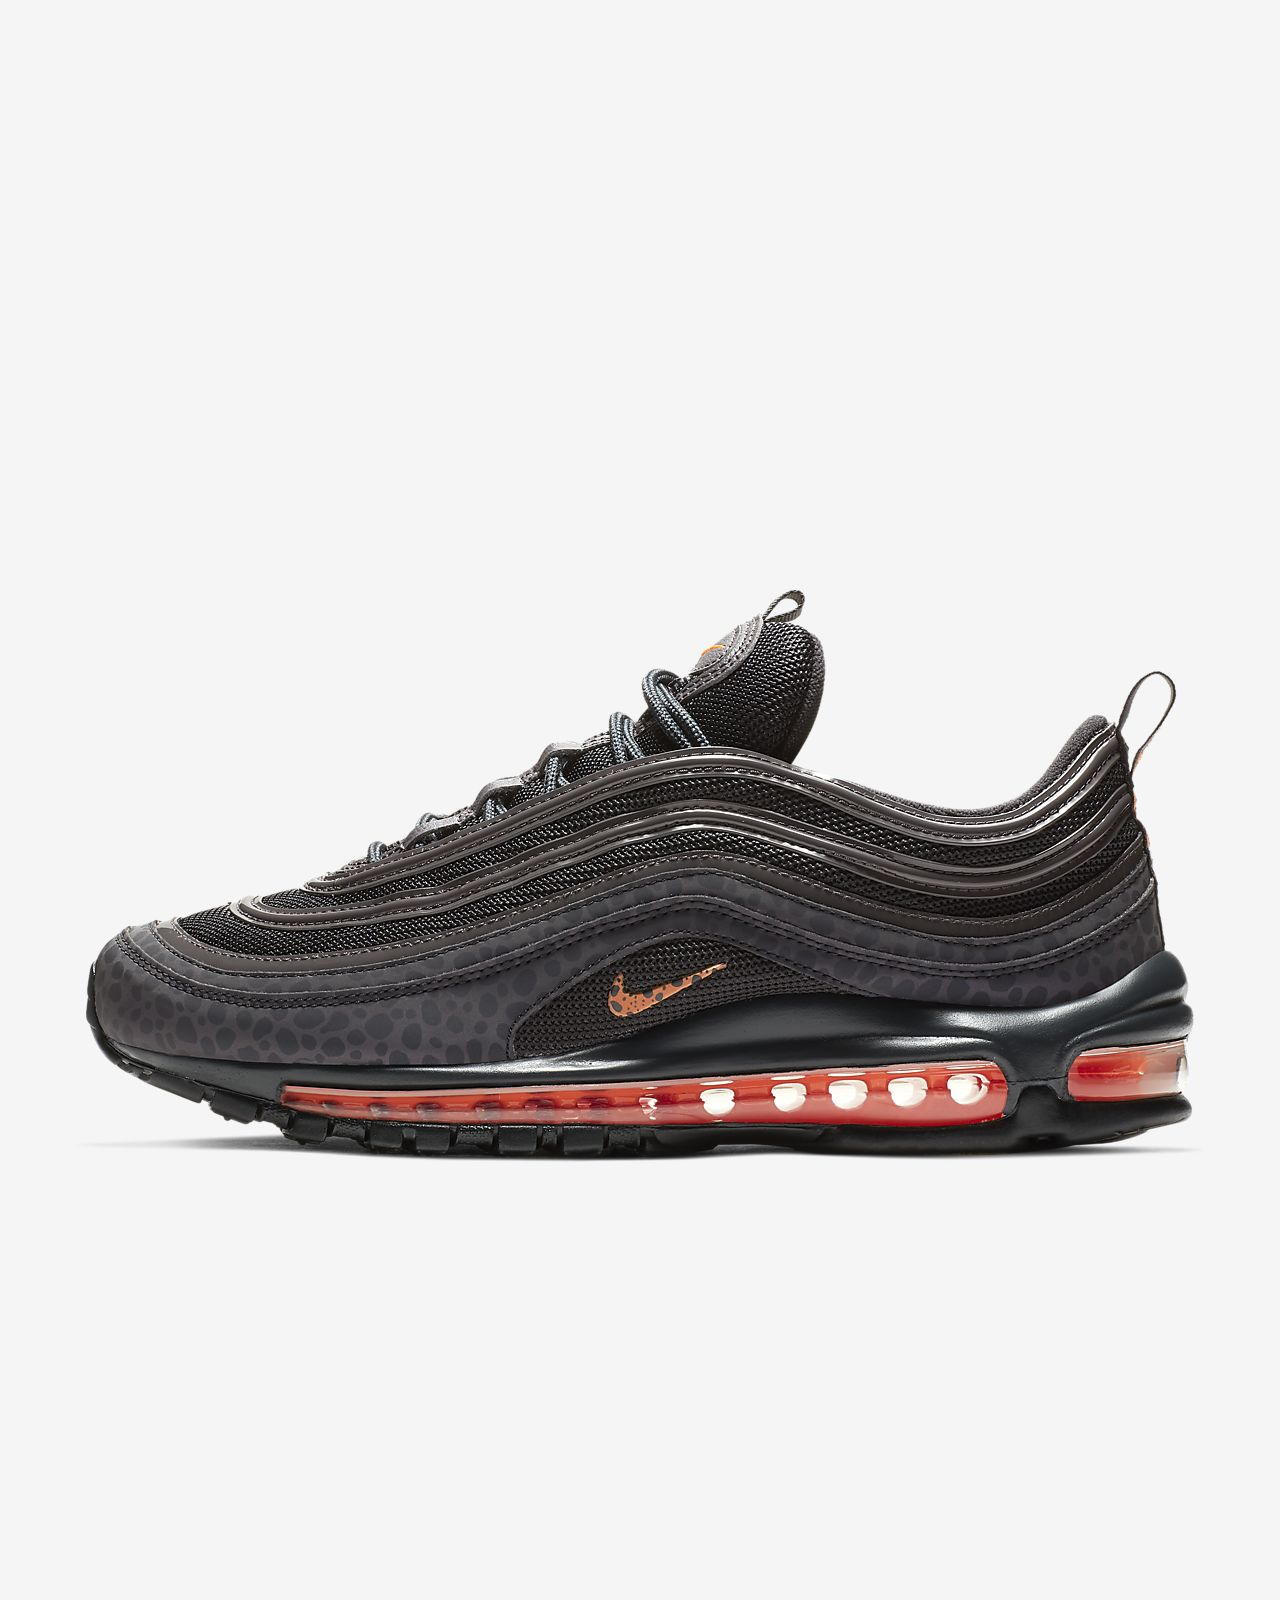 hot sale online 5df6e 37080 ... Nike Air Max 97 SE Reflective Men s Shoe